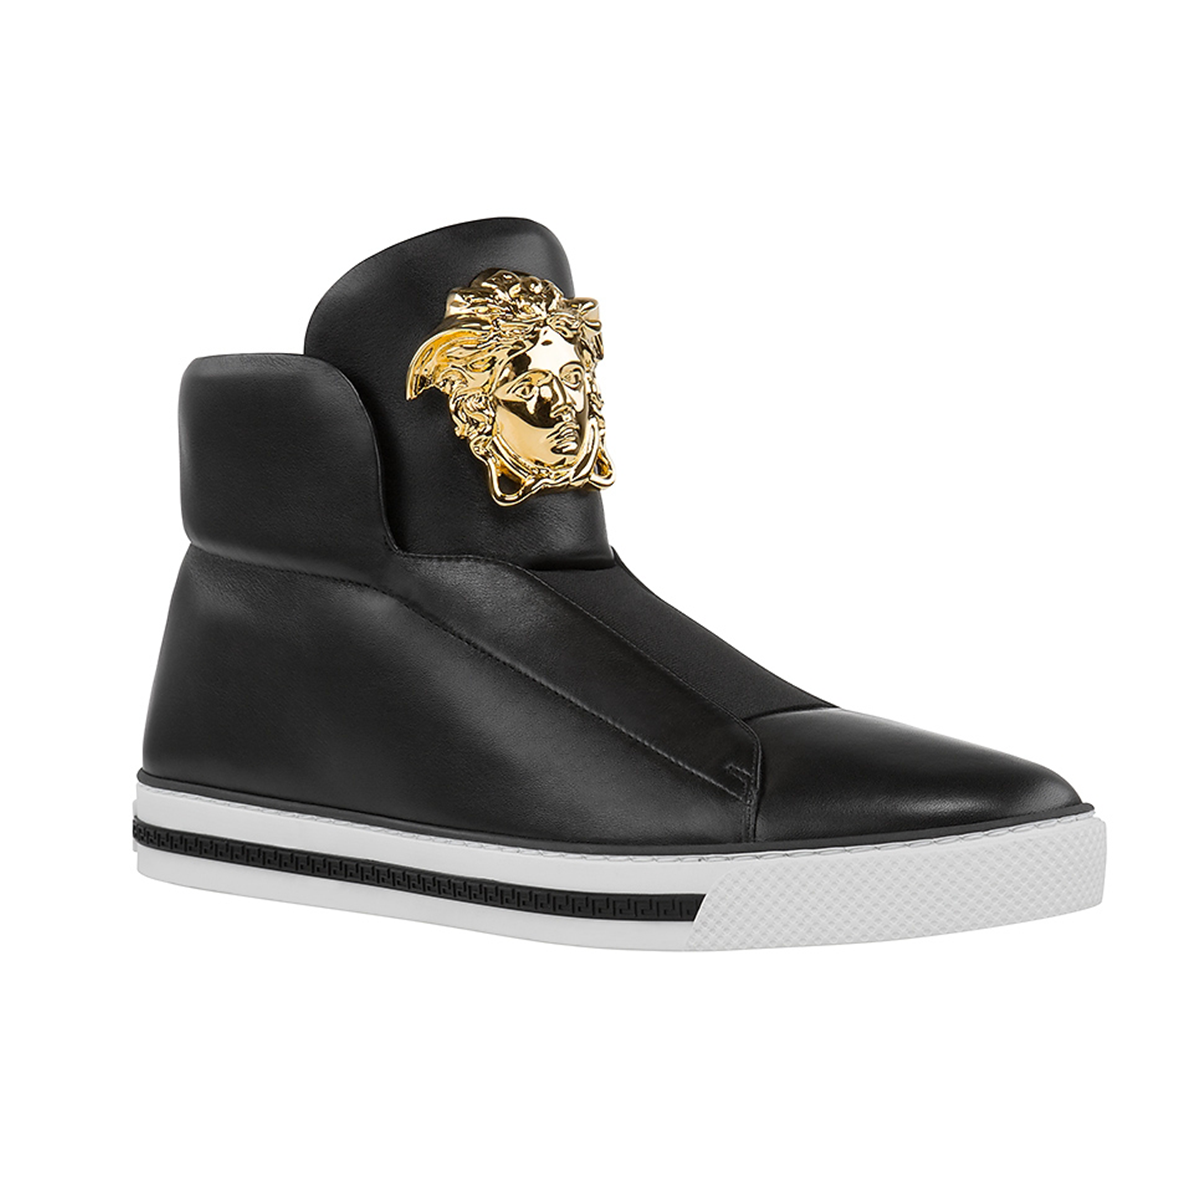 4f8b29fd898 These black Palazzo high-top sneakers are designed to walk miles in style.  Boost your look with this ultimate statement.  Versace